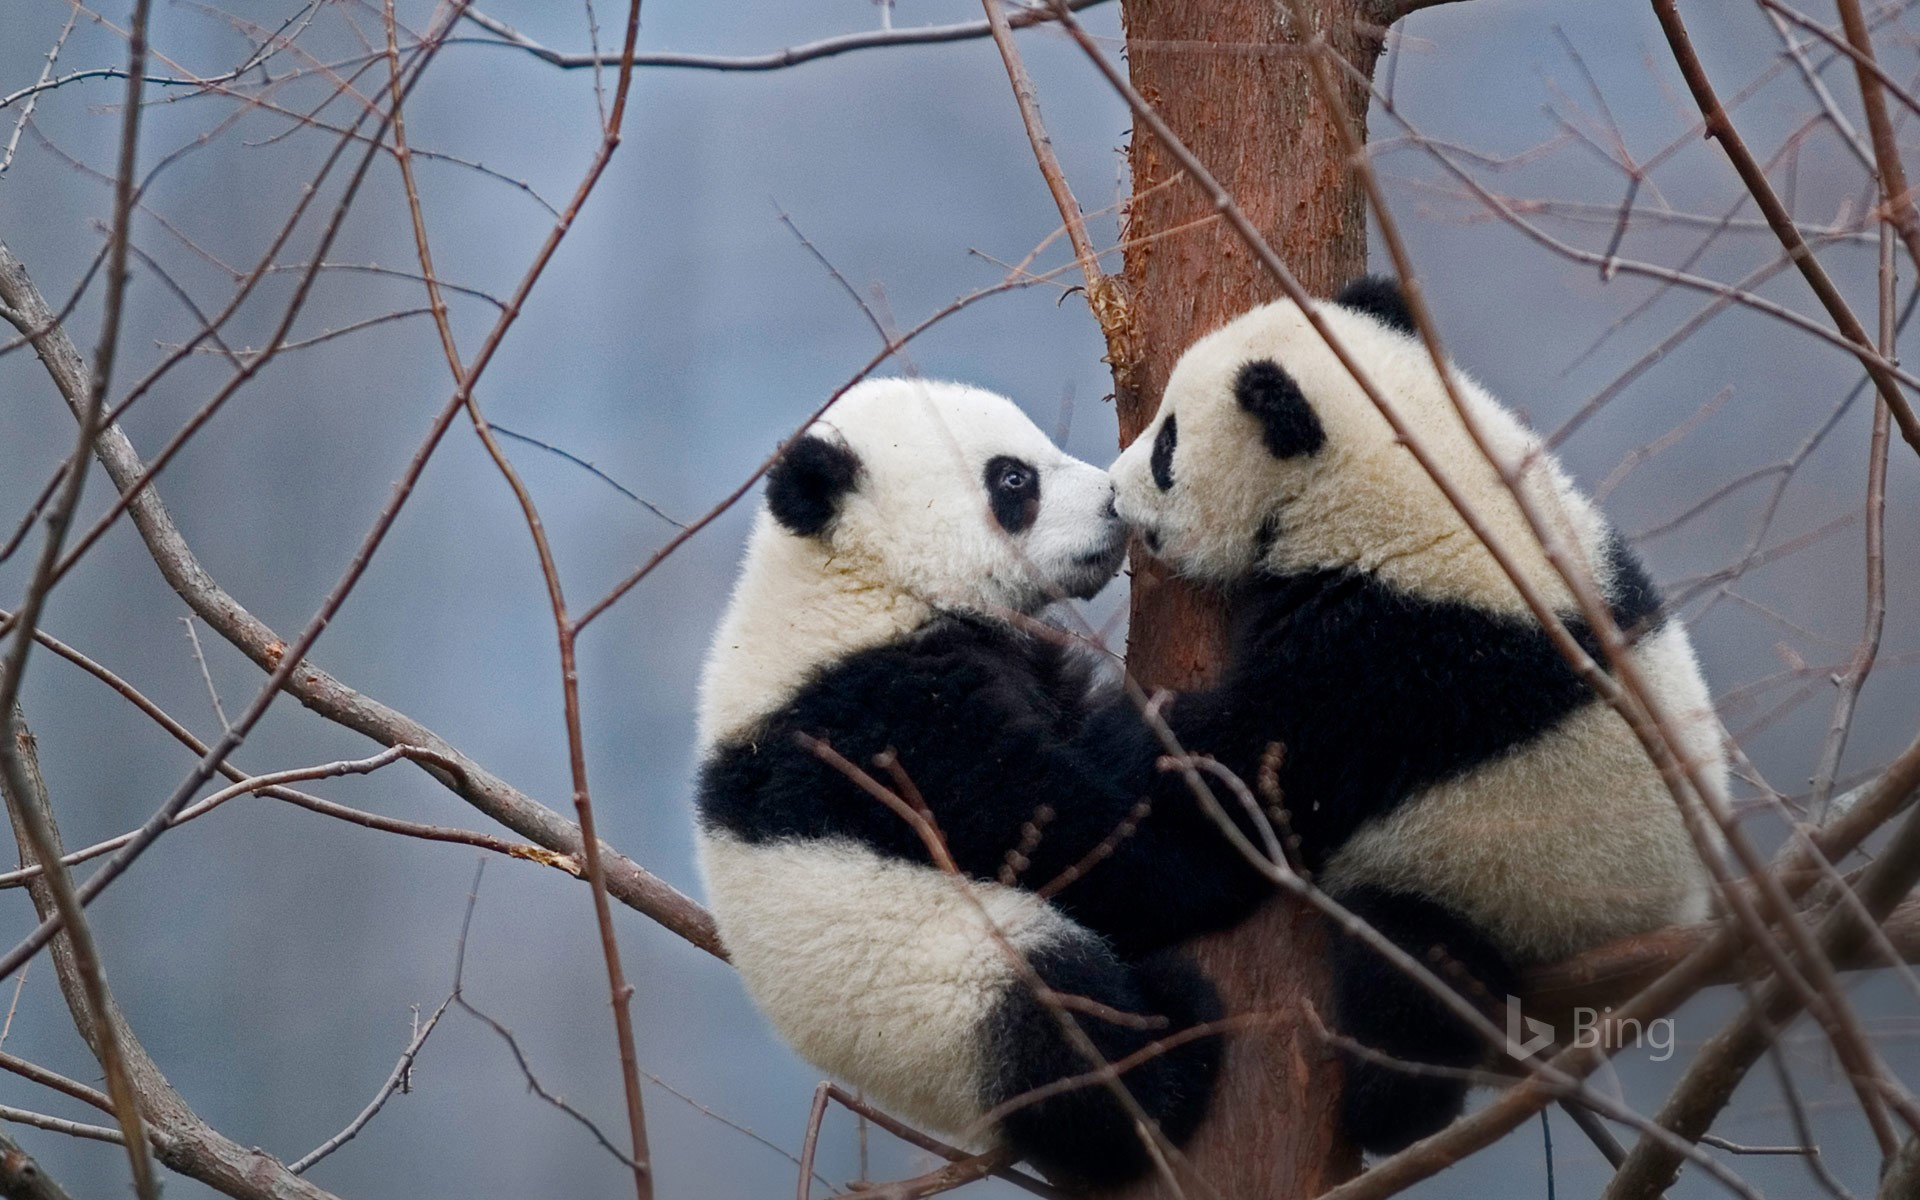 Giant panda cubs in the Wolong National Nature Reserve, China